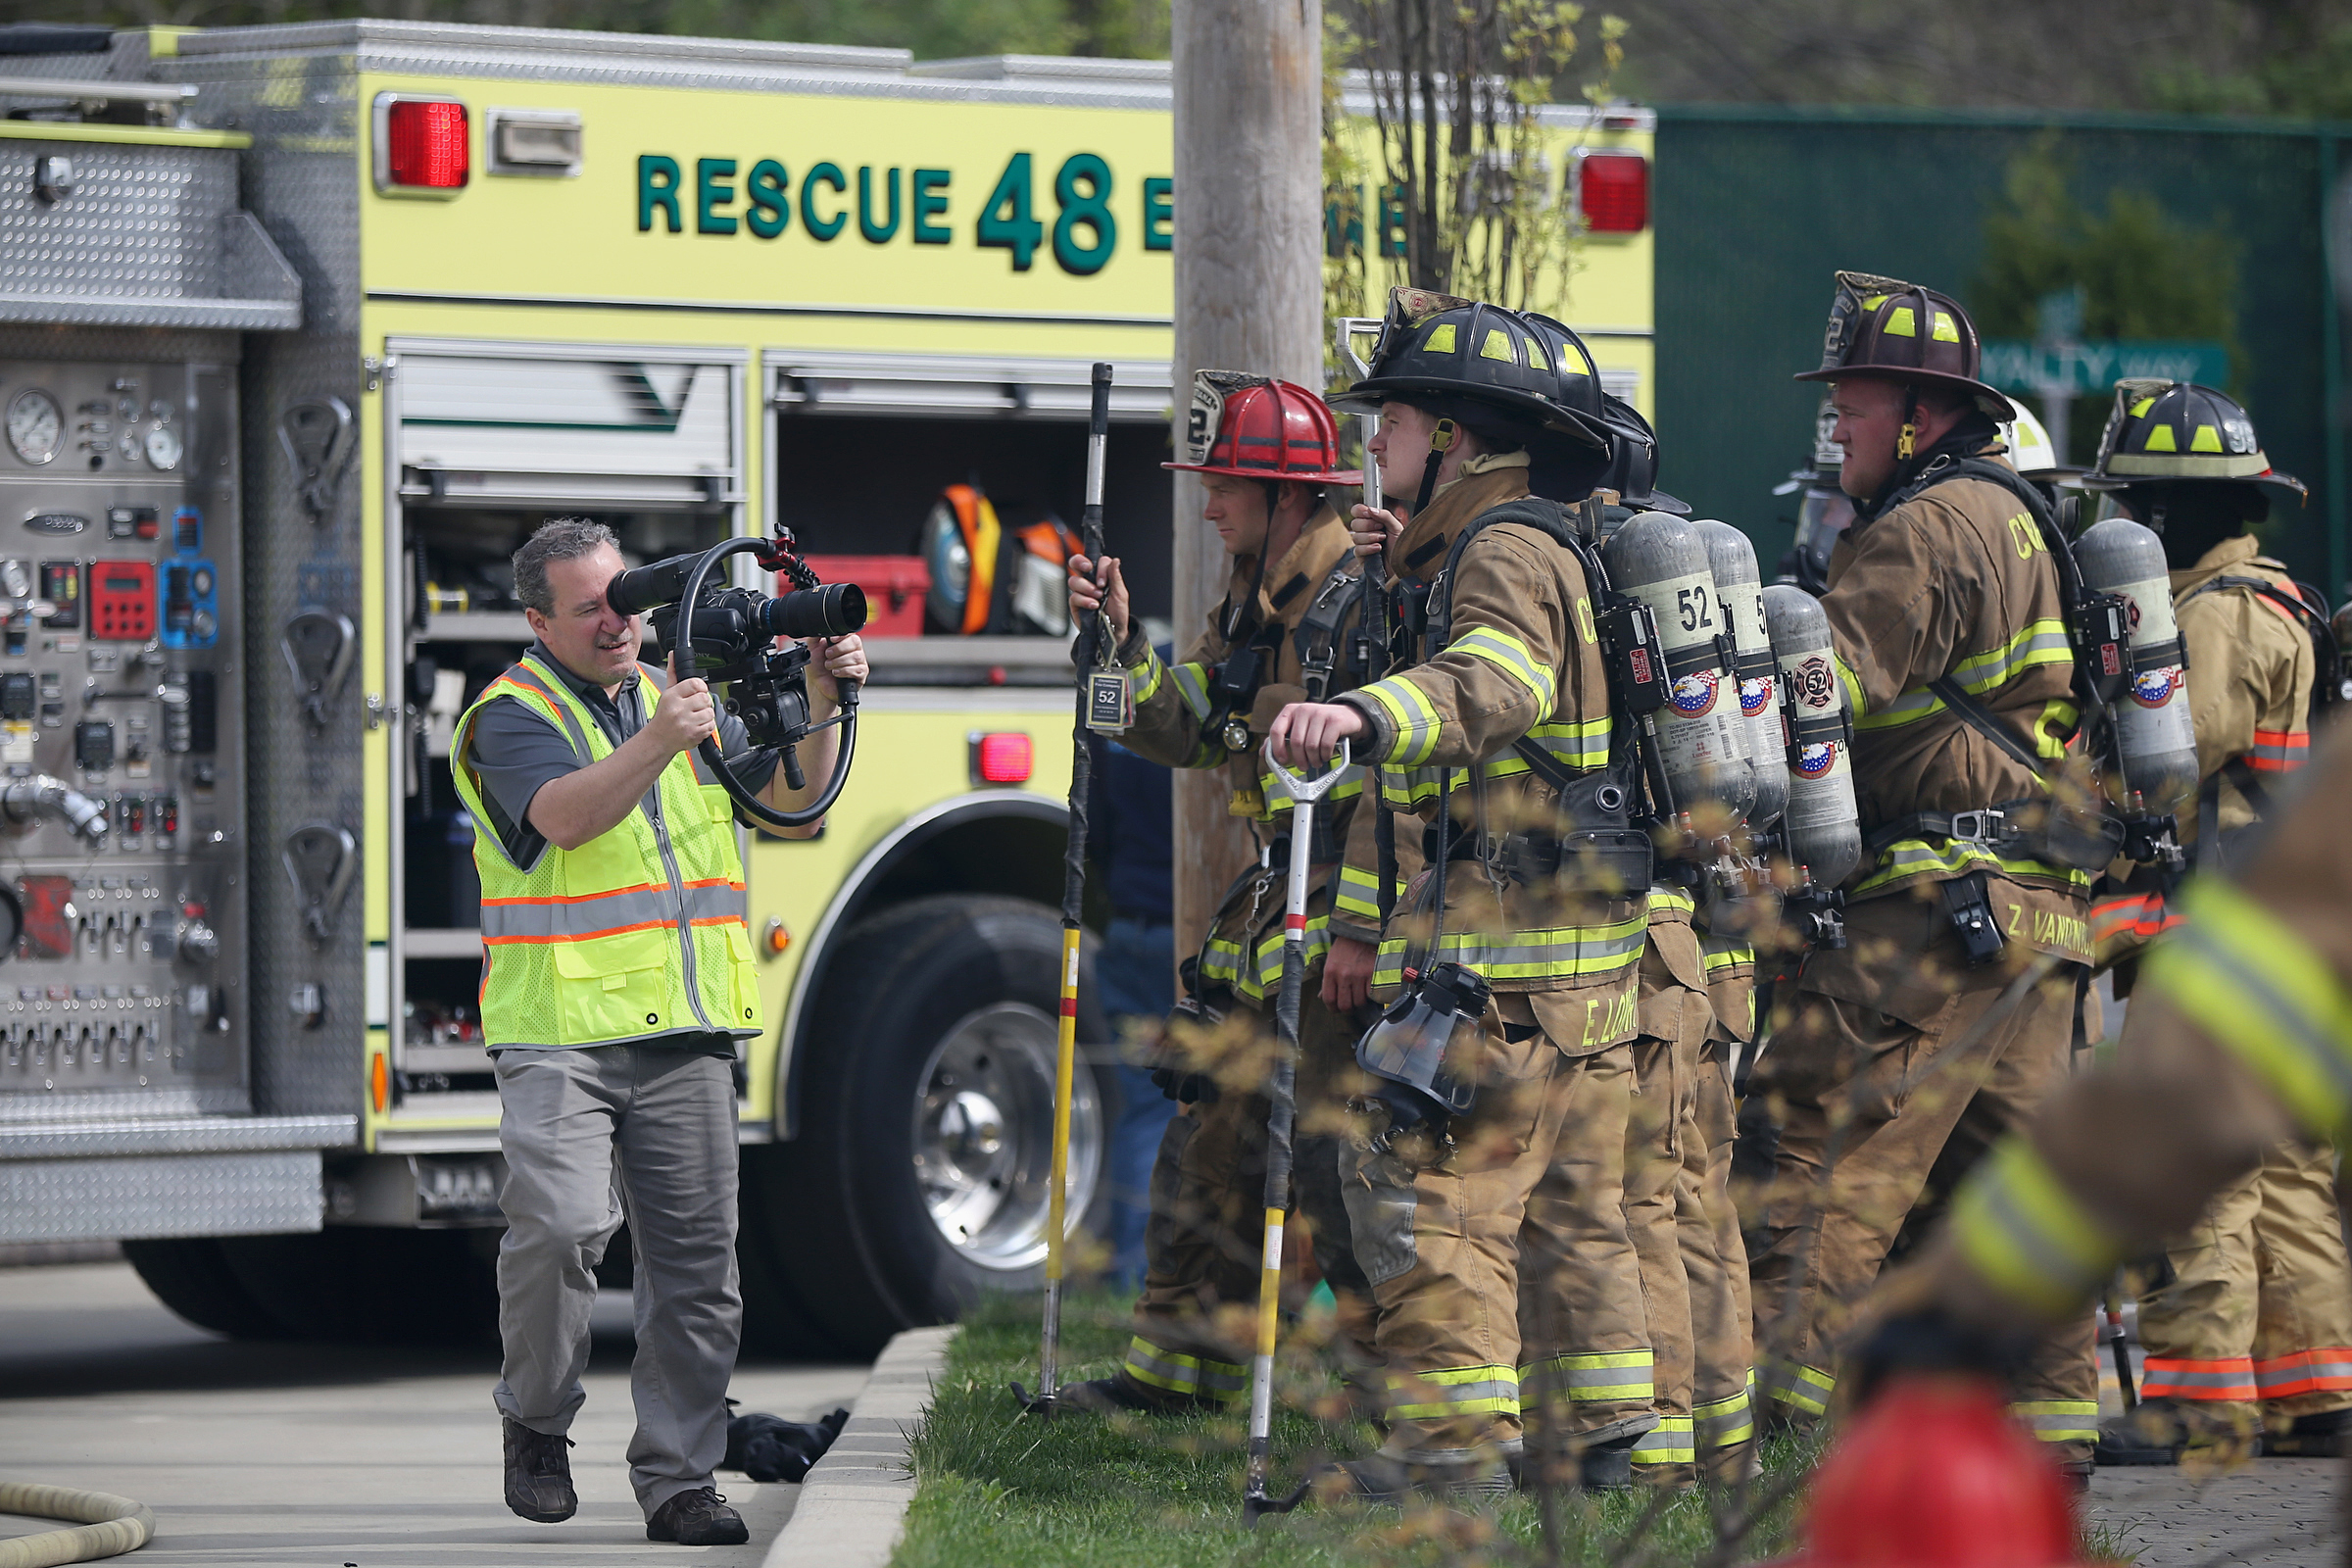 Aardvark Video Works owner Mike Fanaro films firefighters during a training exercise at the Chester County Public Safety Training Campus in Coatesville, Pa., on Saturday, May 5, 2018. Fanaro´s company was hired by Communication Solutions Group, a public relations firm working with the Chester County Fire Chiefs Association, to produce television and movie theater commercials to help recruit volunteer firefighters. TIM TAI / Staff Photographer